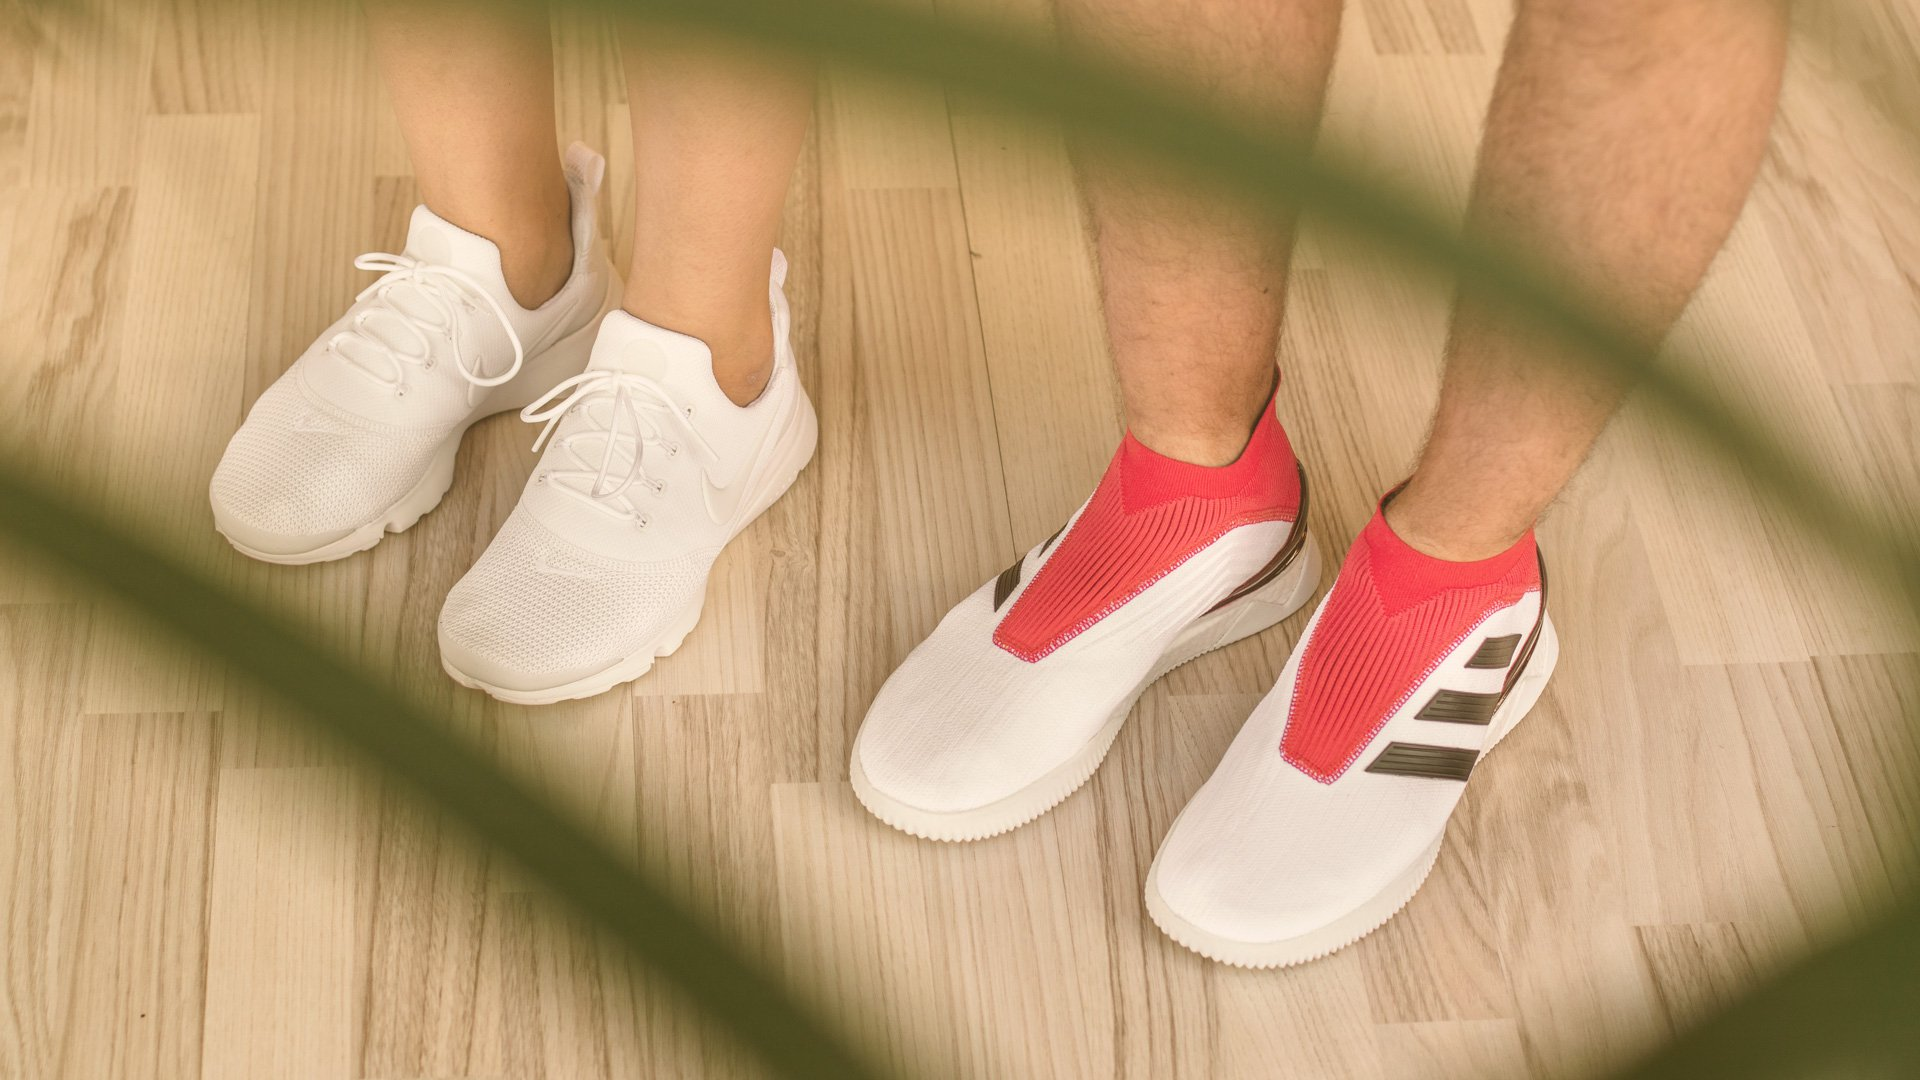 hot sales 46e0f 8fbce Look of summer   Sommarens bästa sneakers